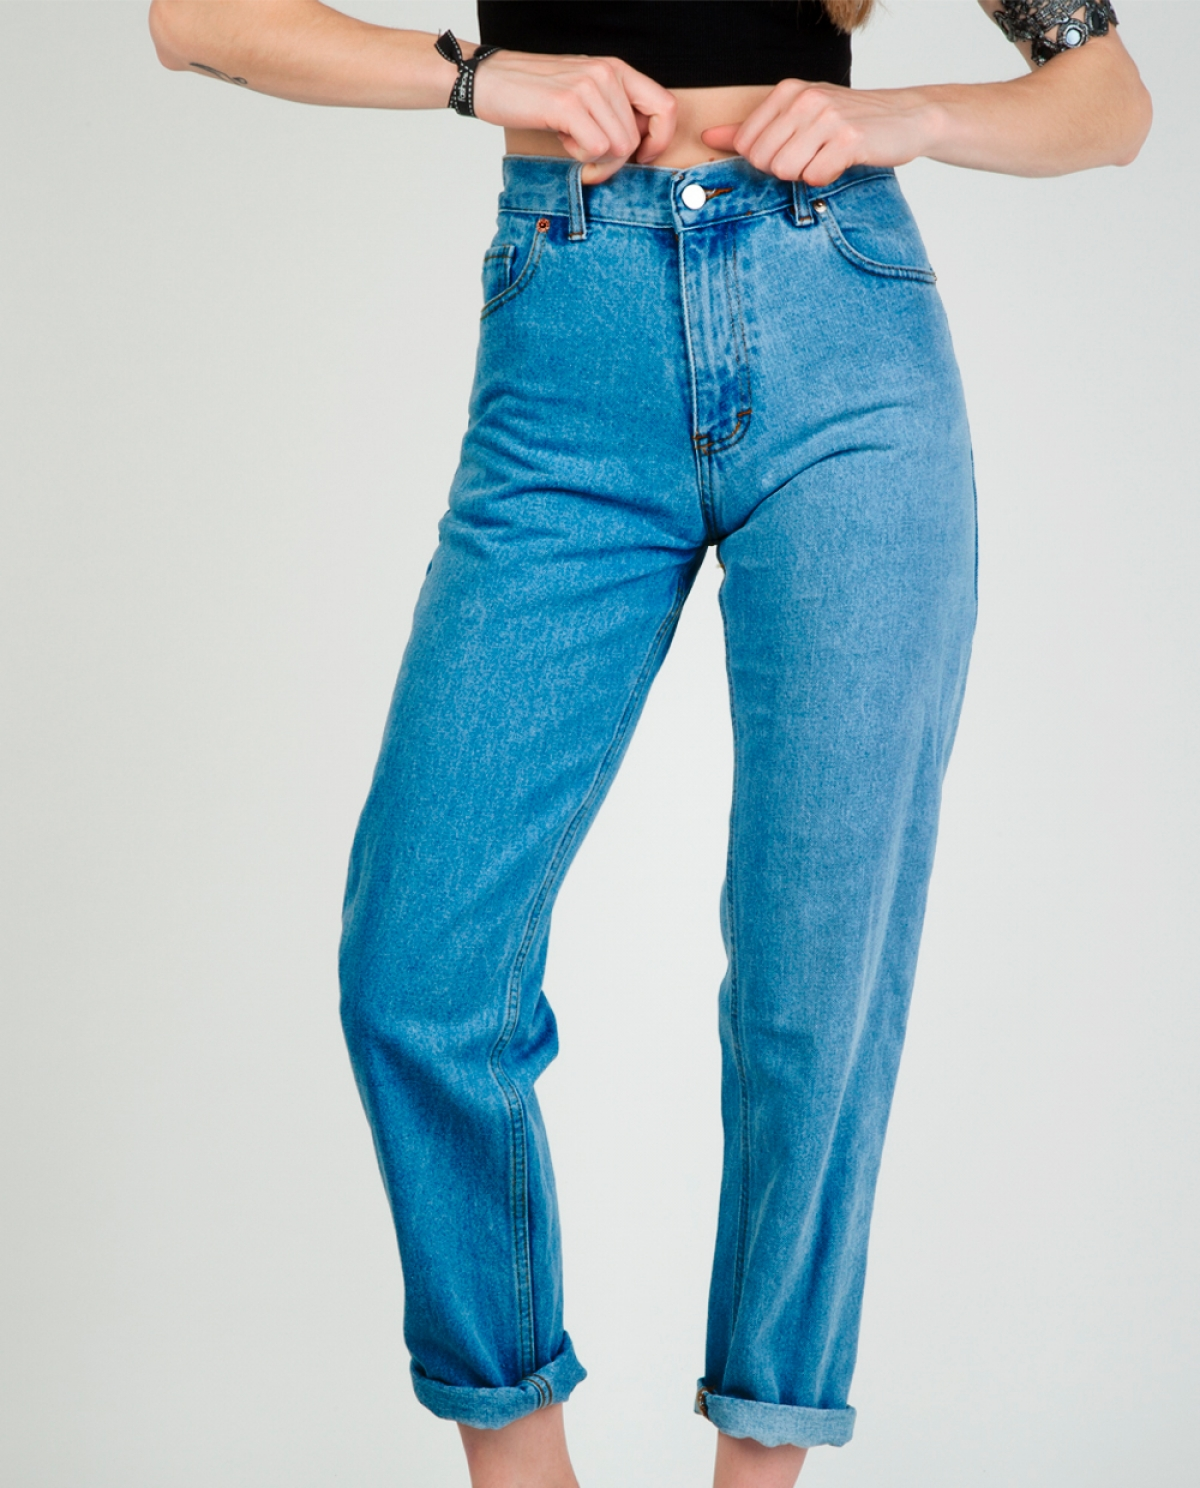 Barbara Medium Boyfriend Jeans